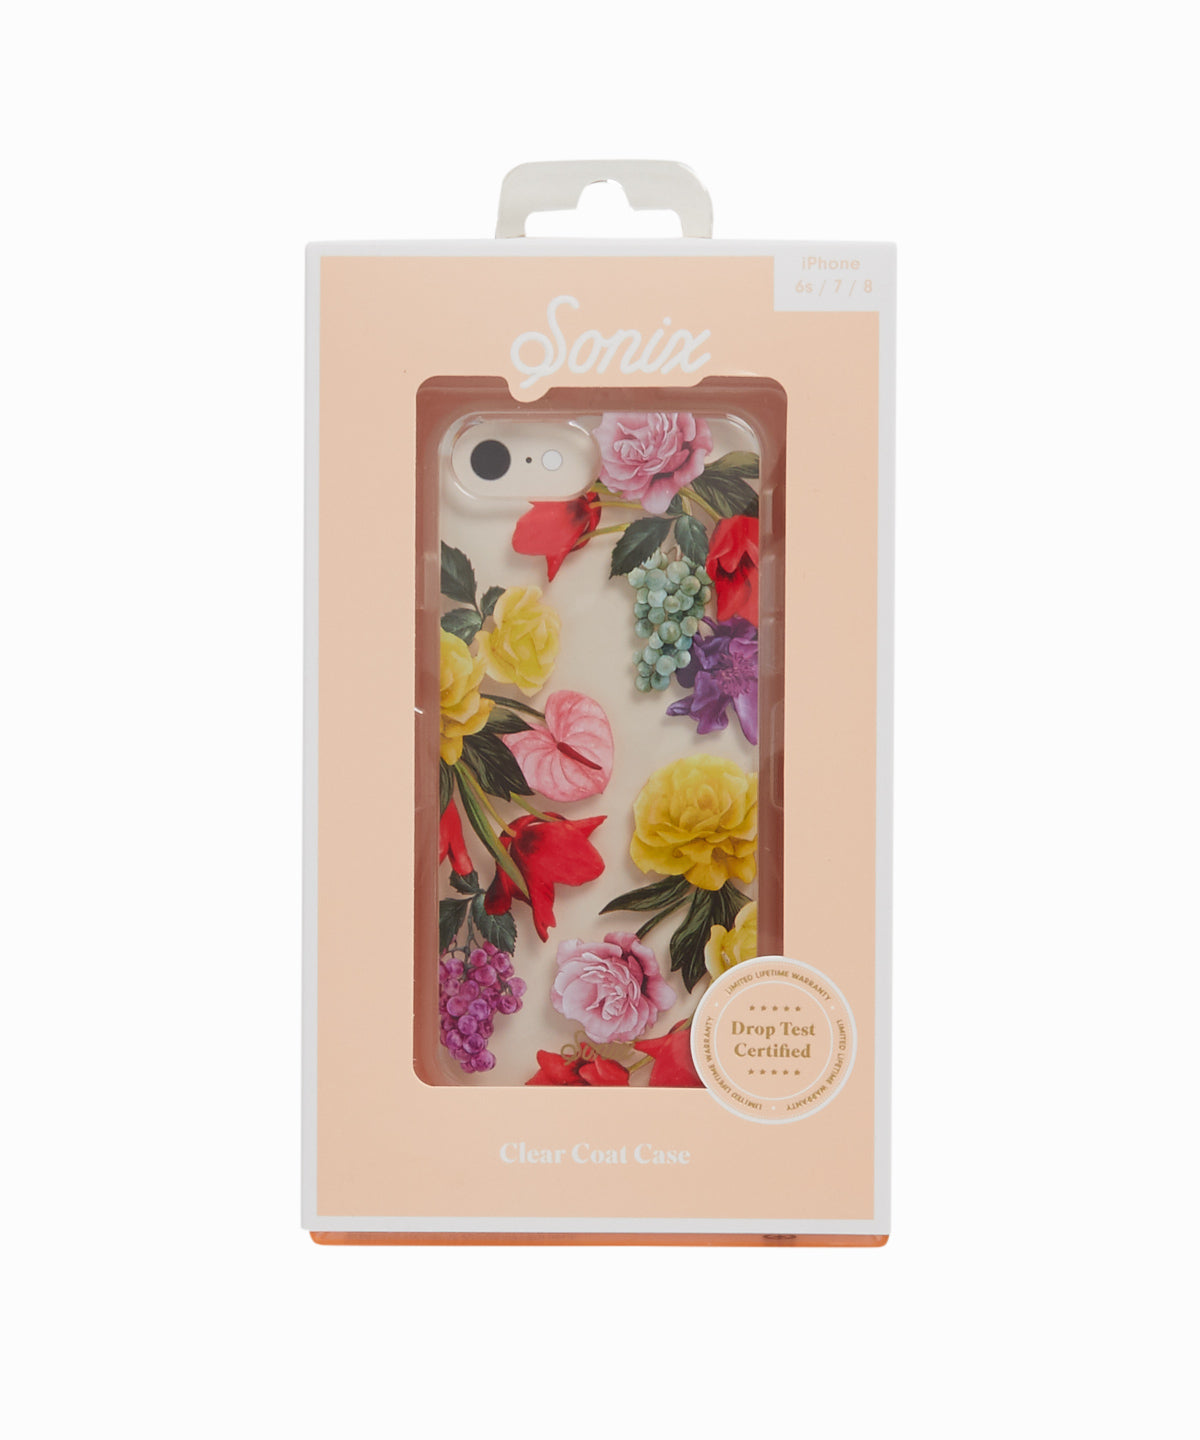 iPhone 6s/7/8 Clear Coat Floral Case